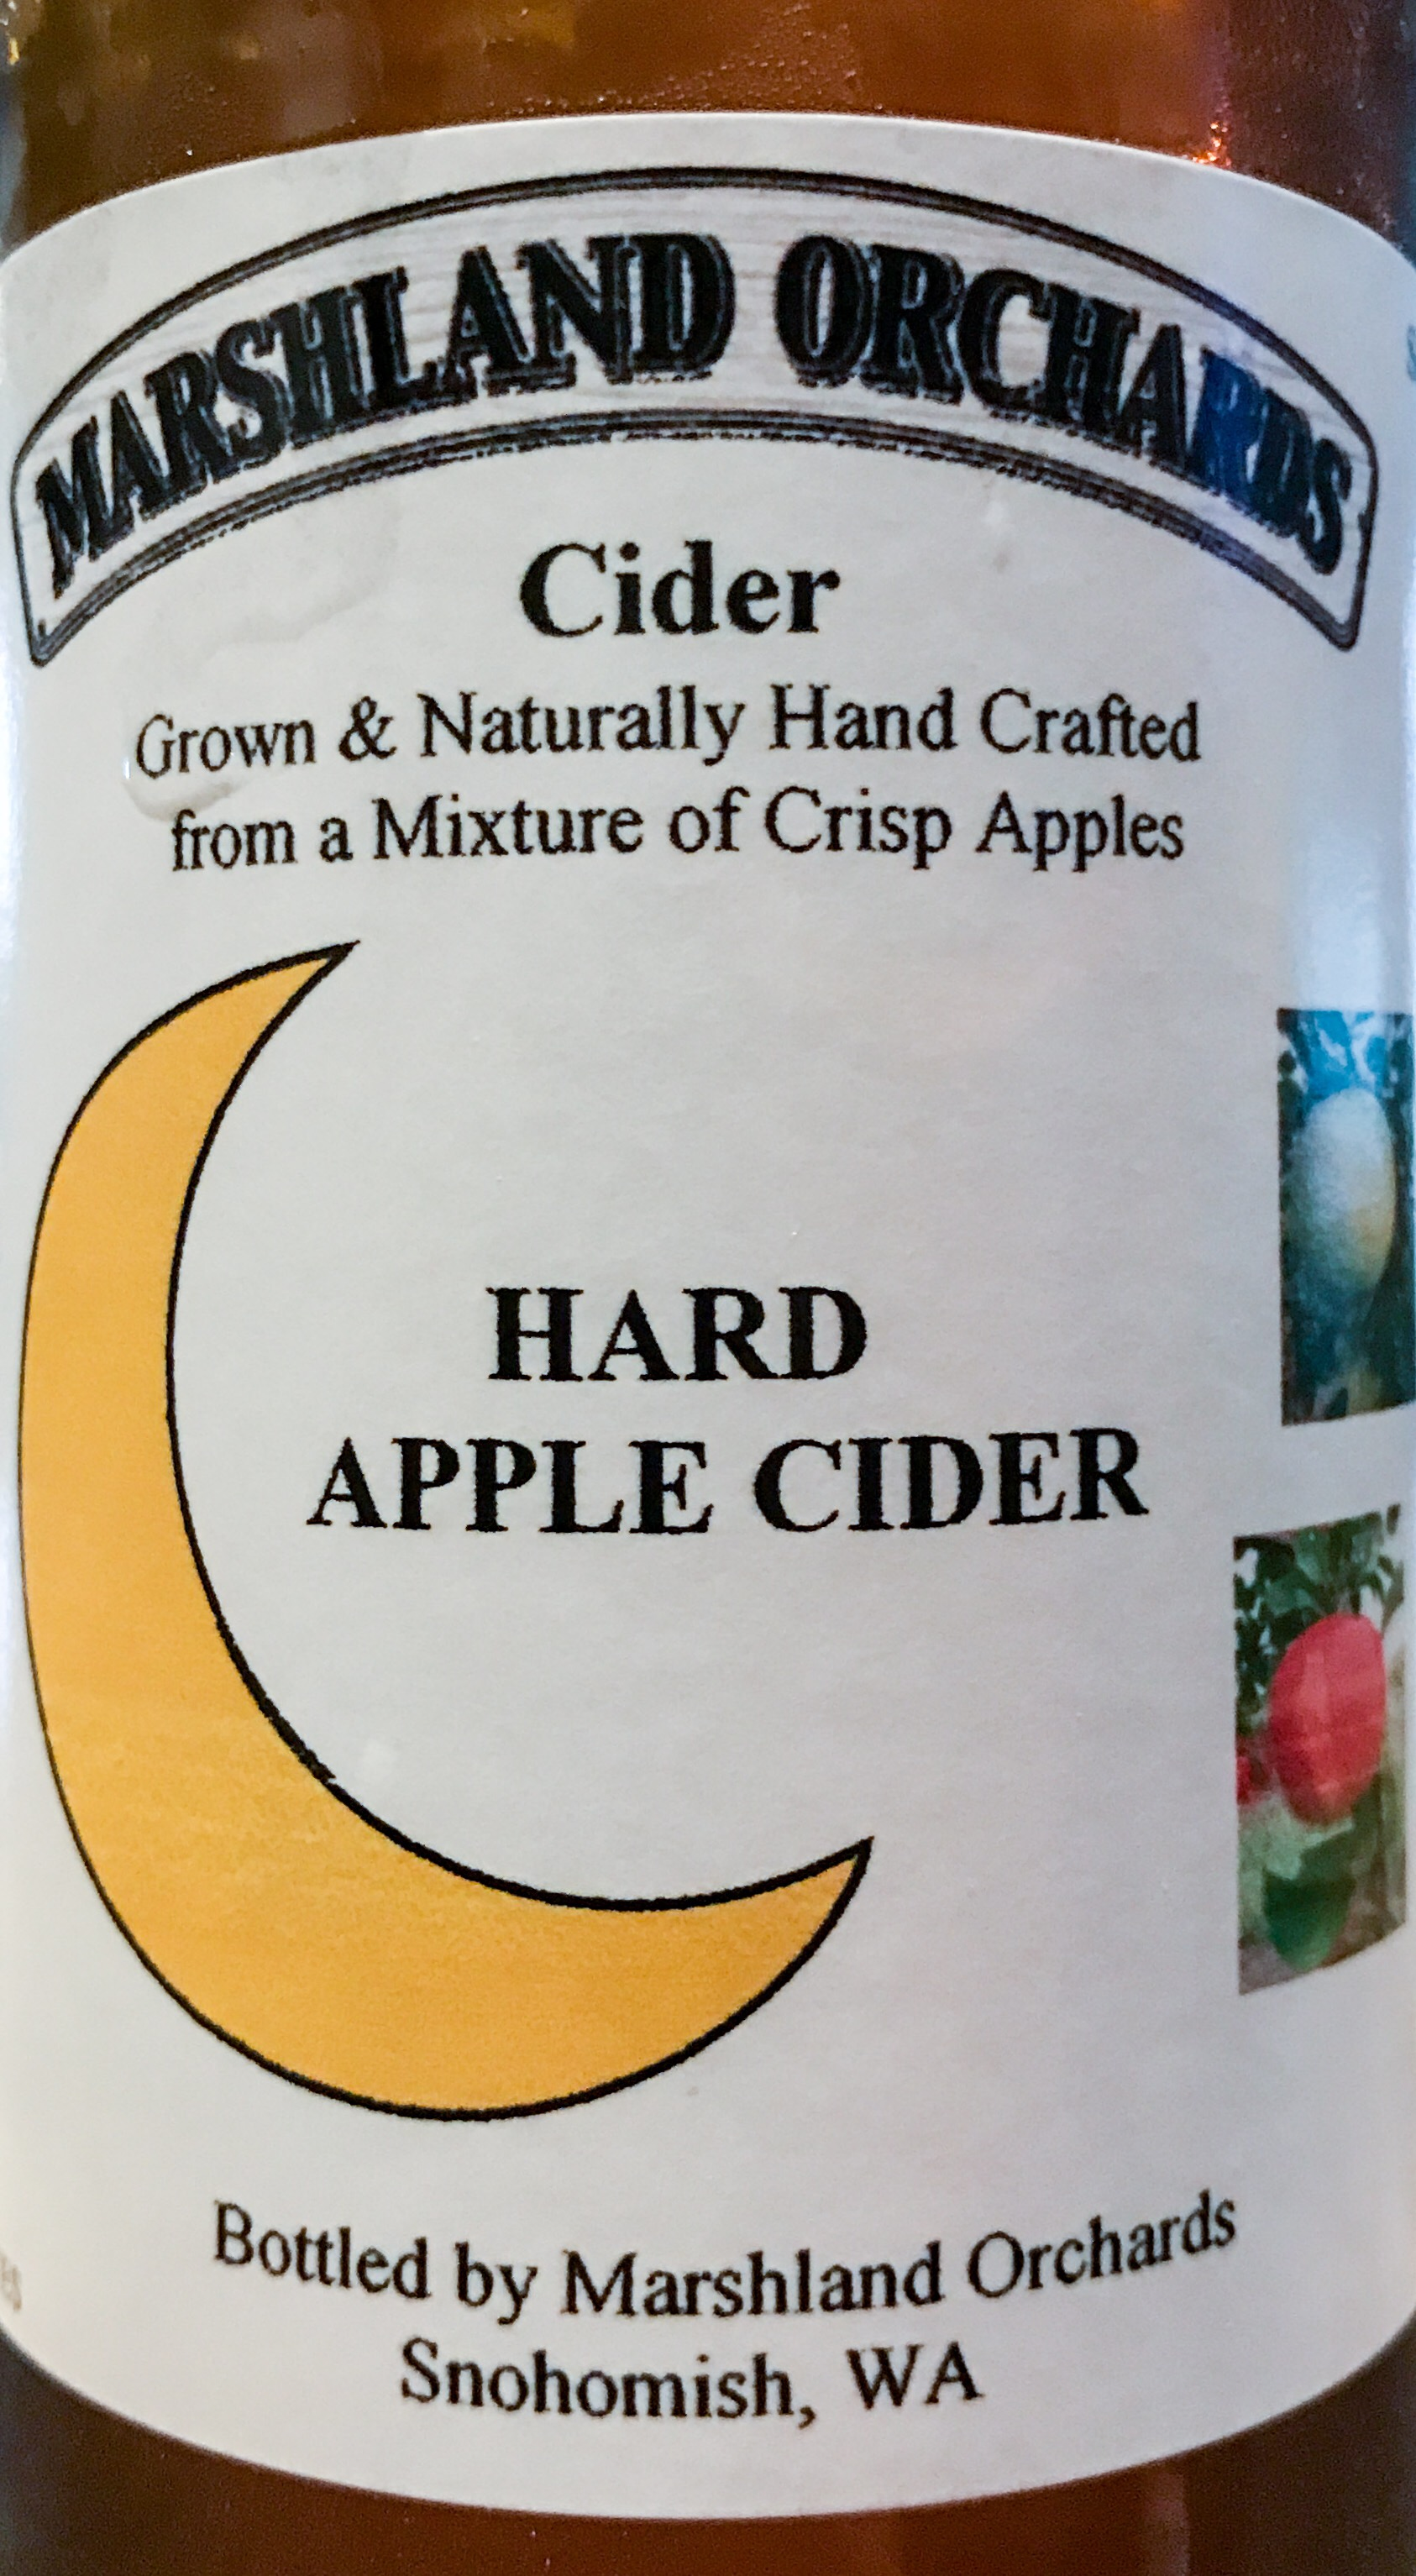 Marshland Orchards Cider